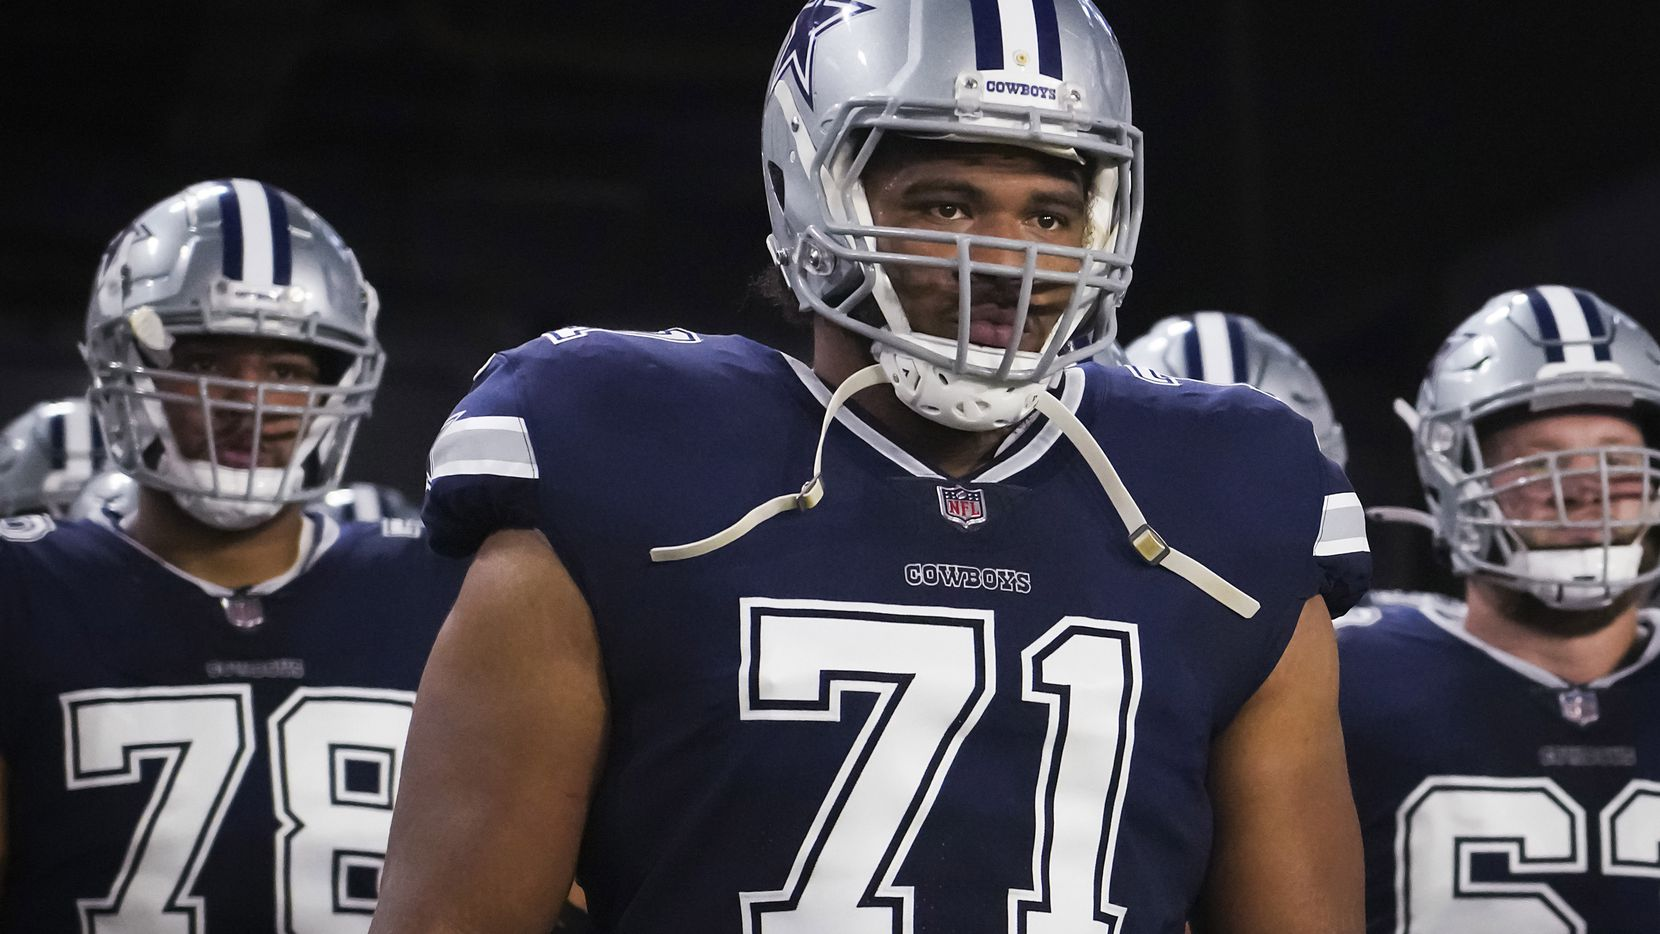 Dallas Cowboys offensive tackle La'el Collins (71) waits to take the field before an NFL football game against the Tampa Bay Buccaneers at Raymond James Stadium on Thursday, Sept. 9, 2021, in Tampa, Fla.